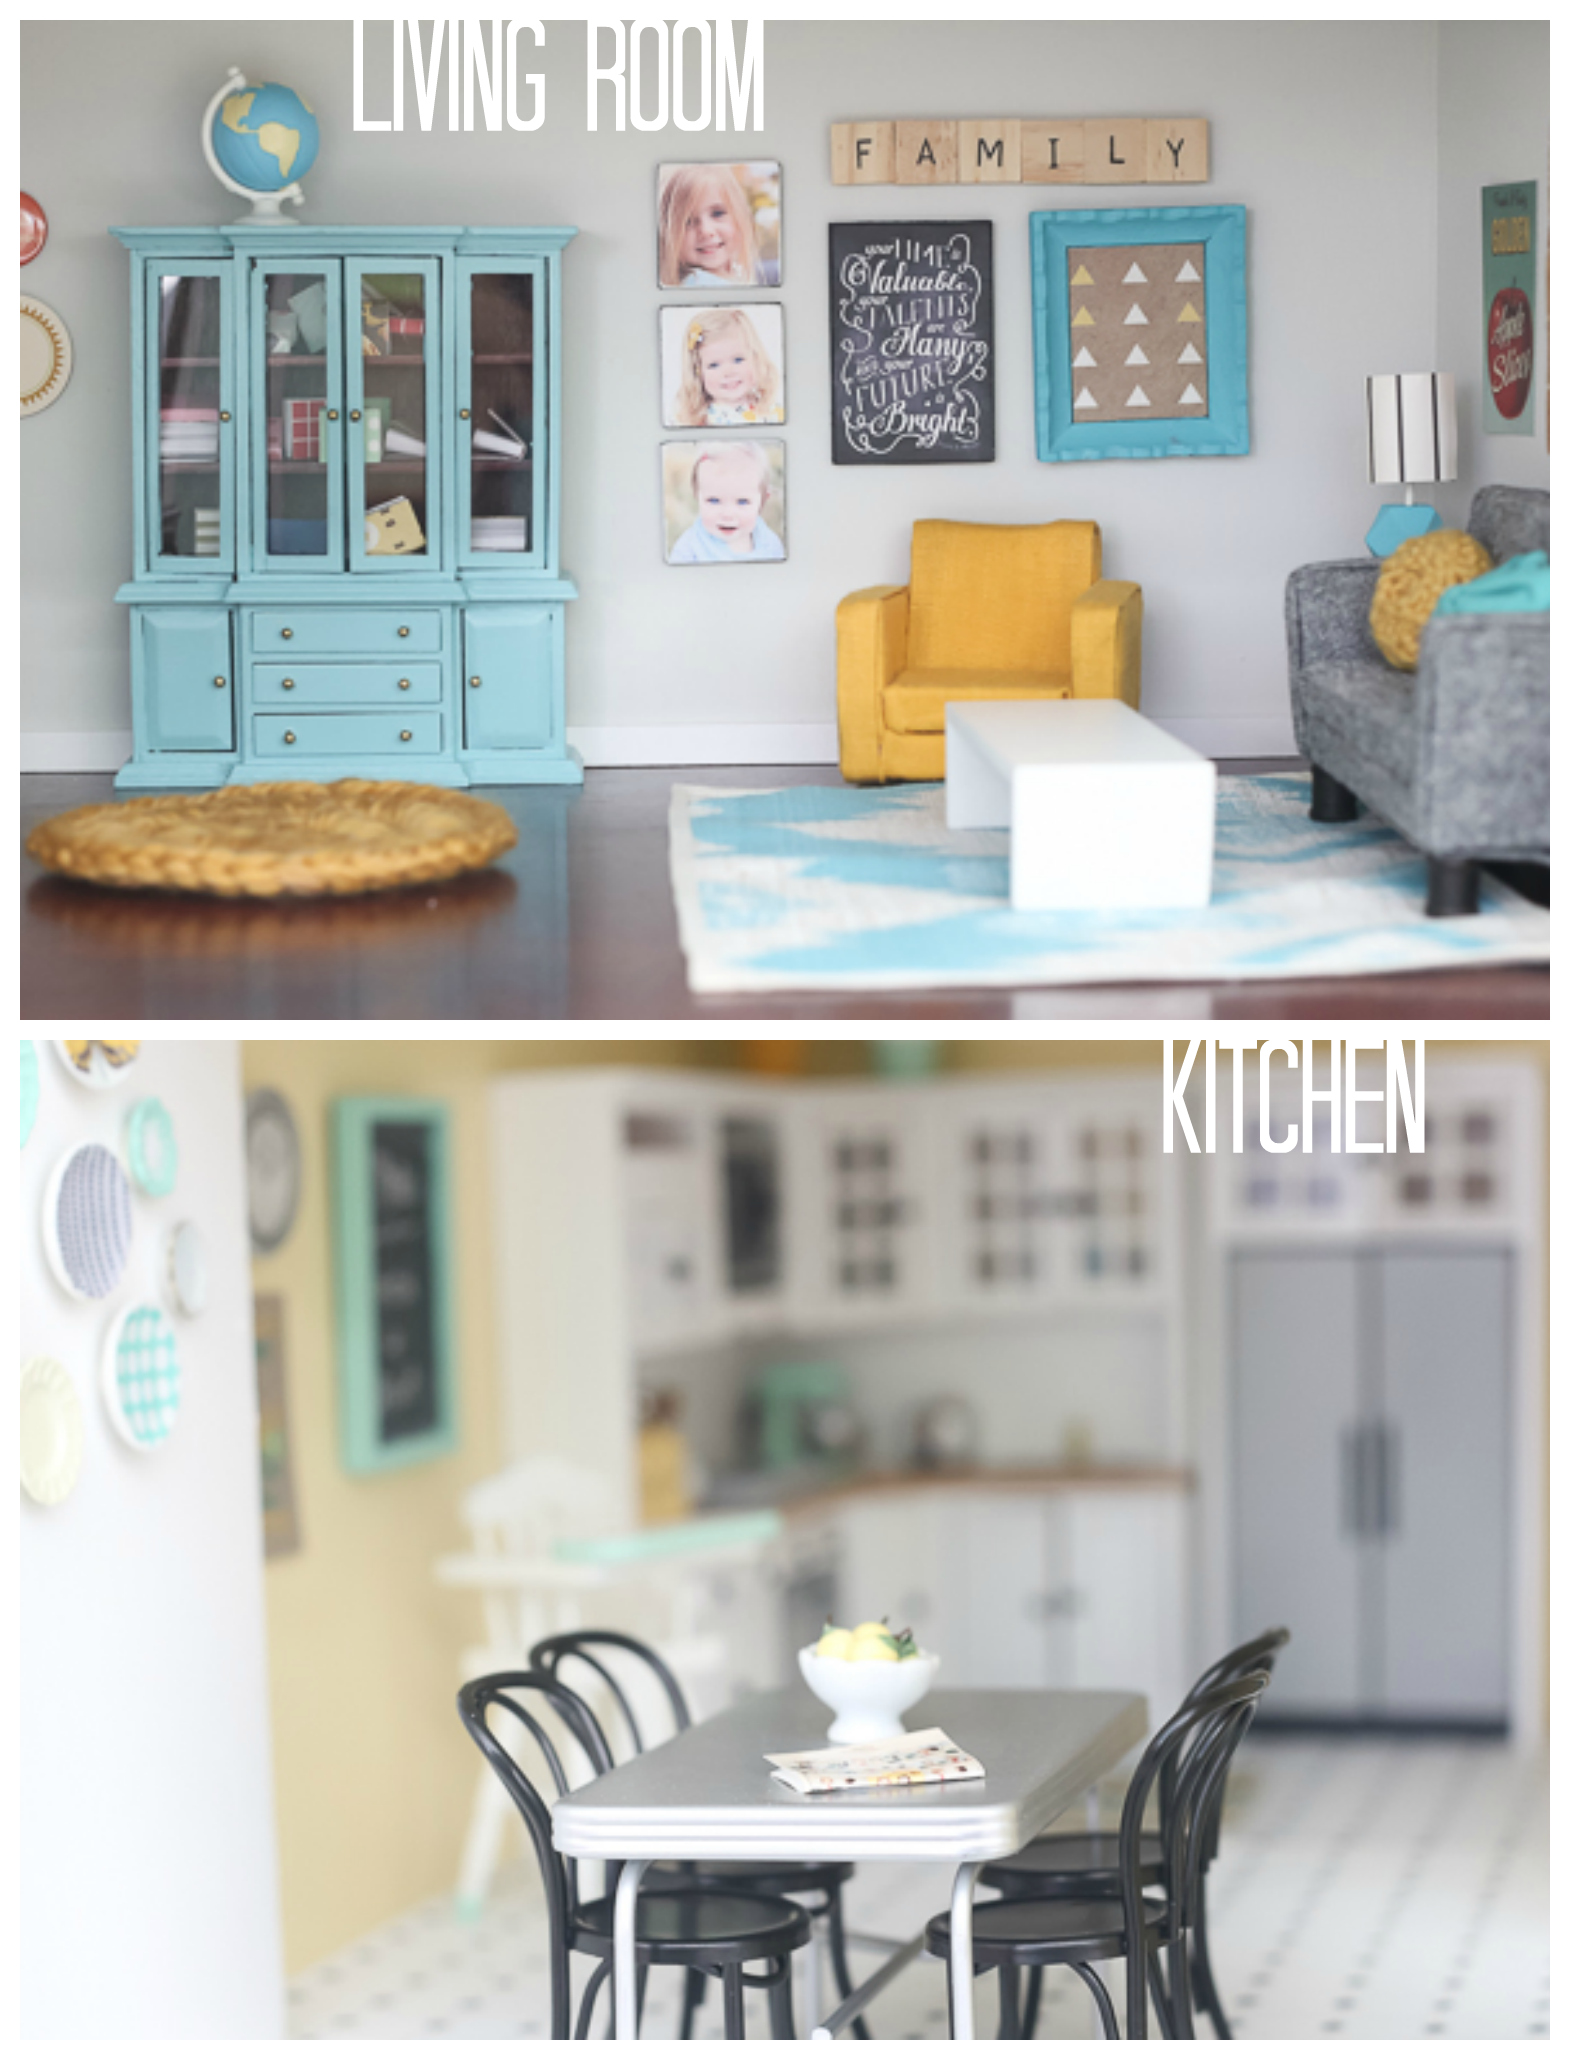 diy dollhouse living room and kitchen. Black Bedroom Furniture Sets. Home Design Ideas